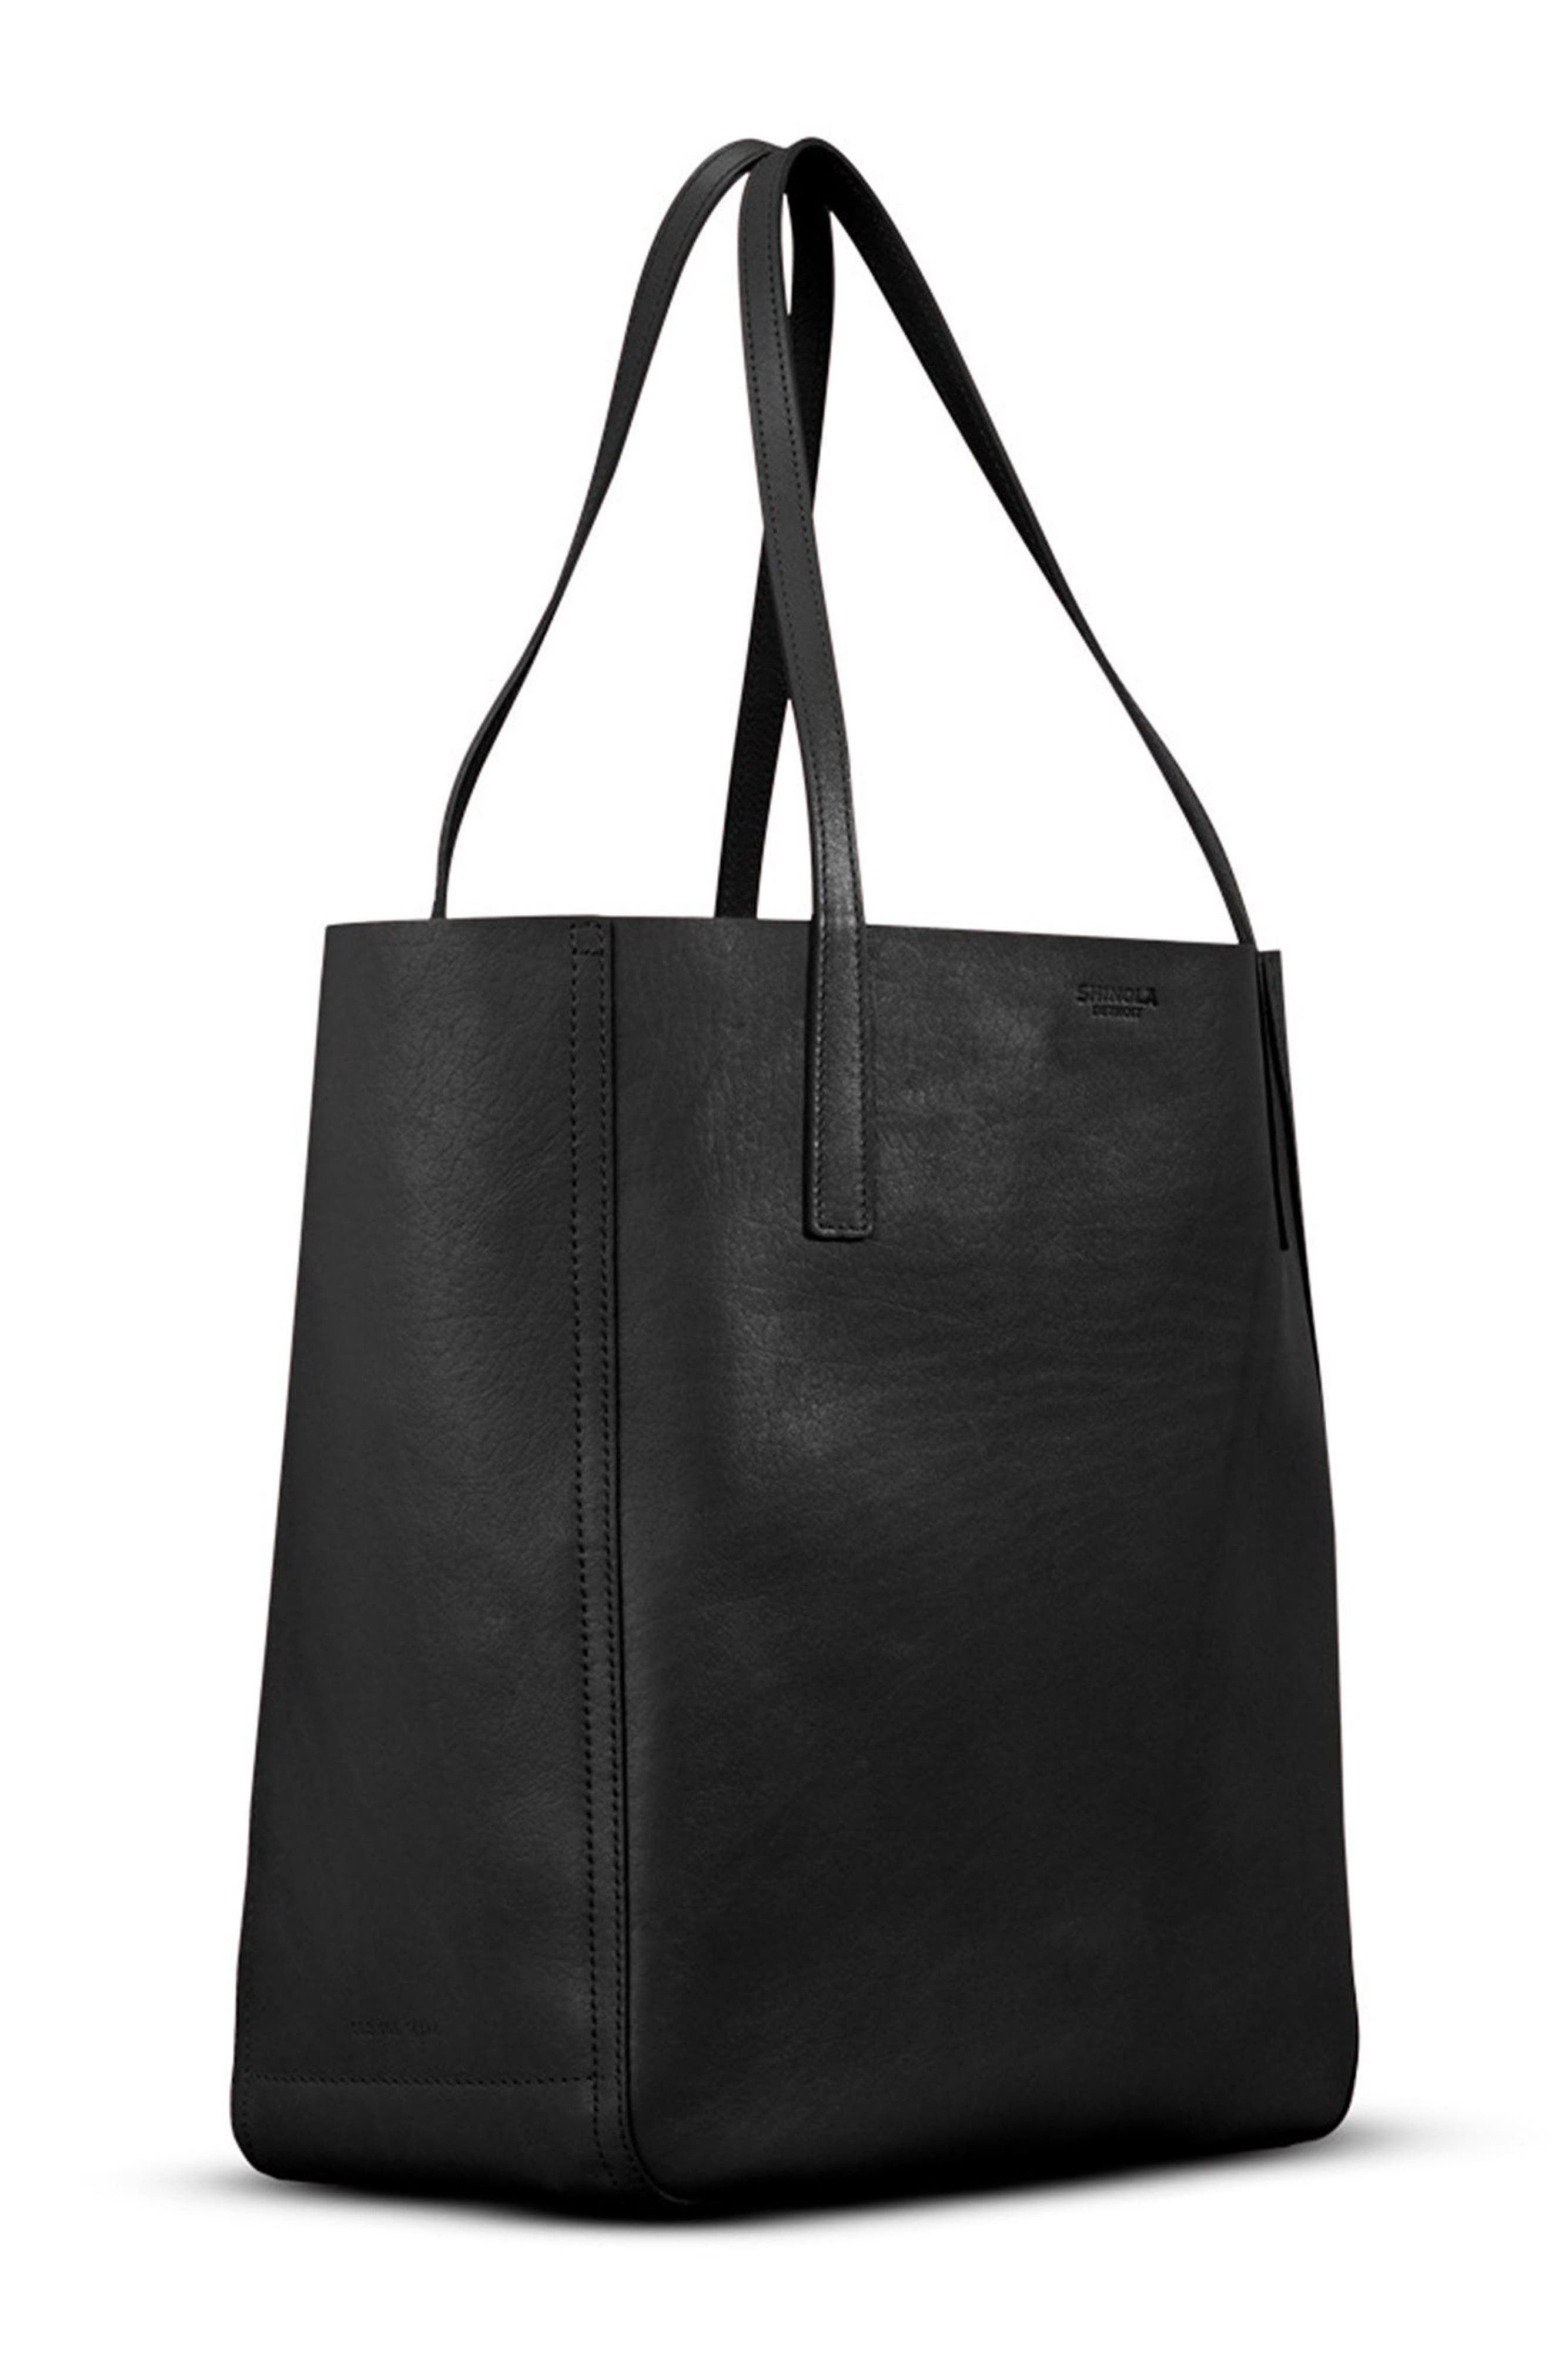 Medium Leather Shopper,                             Alternate thumbnail 4, color,                             BLACK